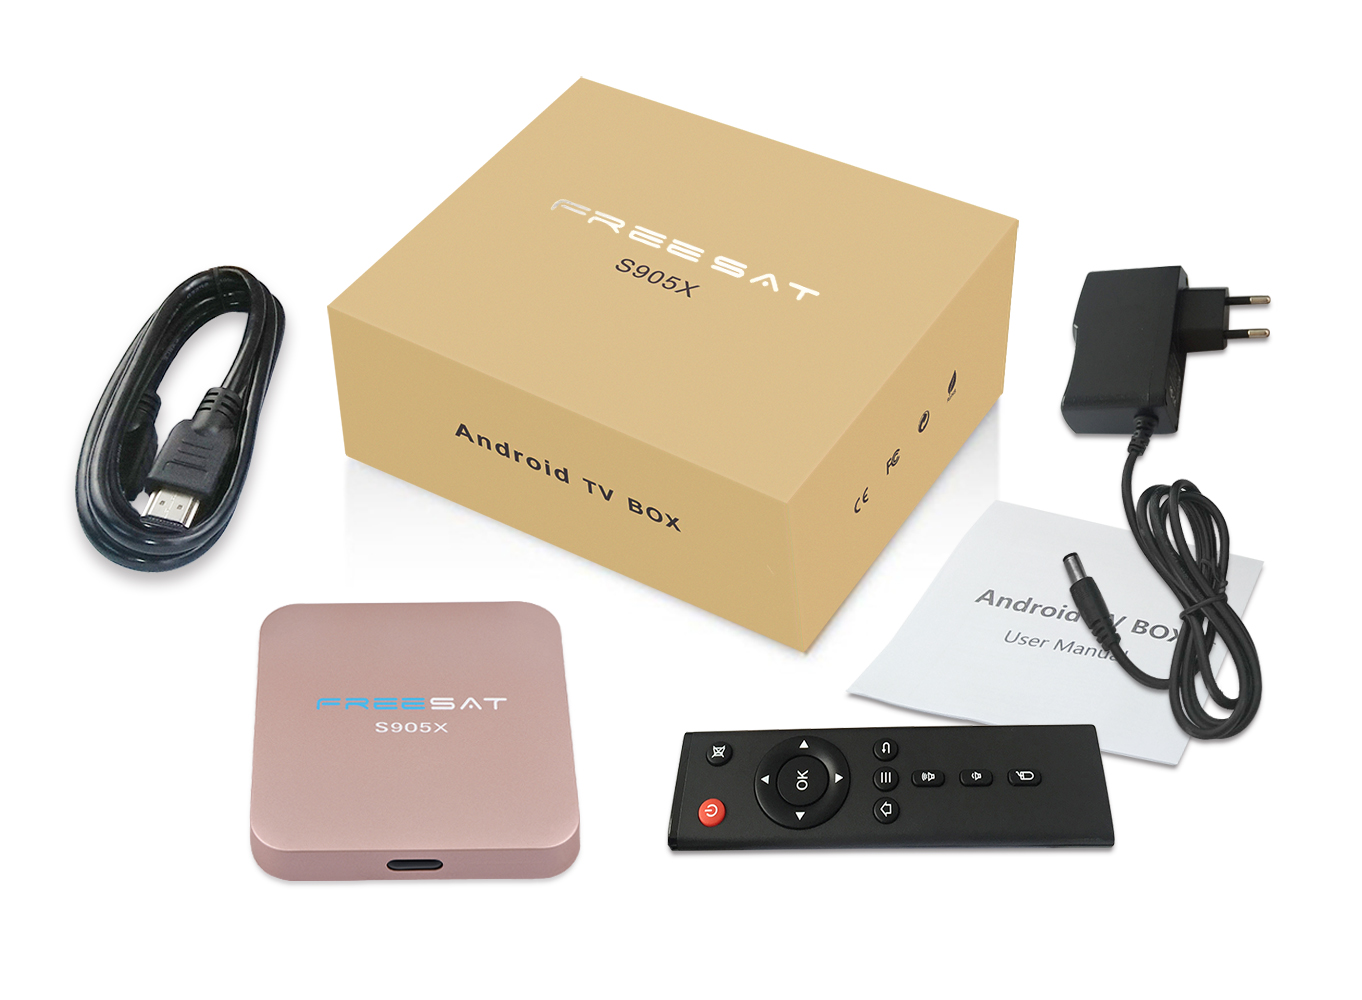 Receptor de satélite Freesat s905x 2/16G HD color rosa set top box android Freesat s905x tv box